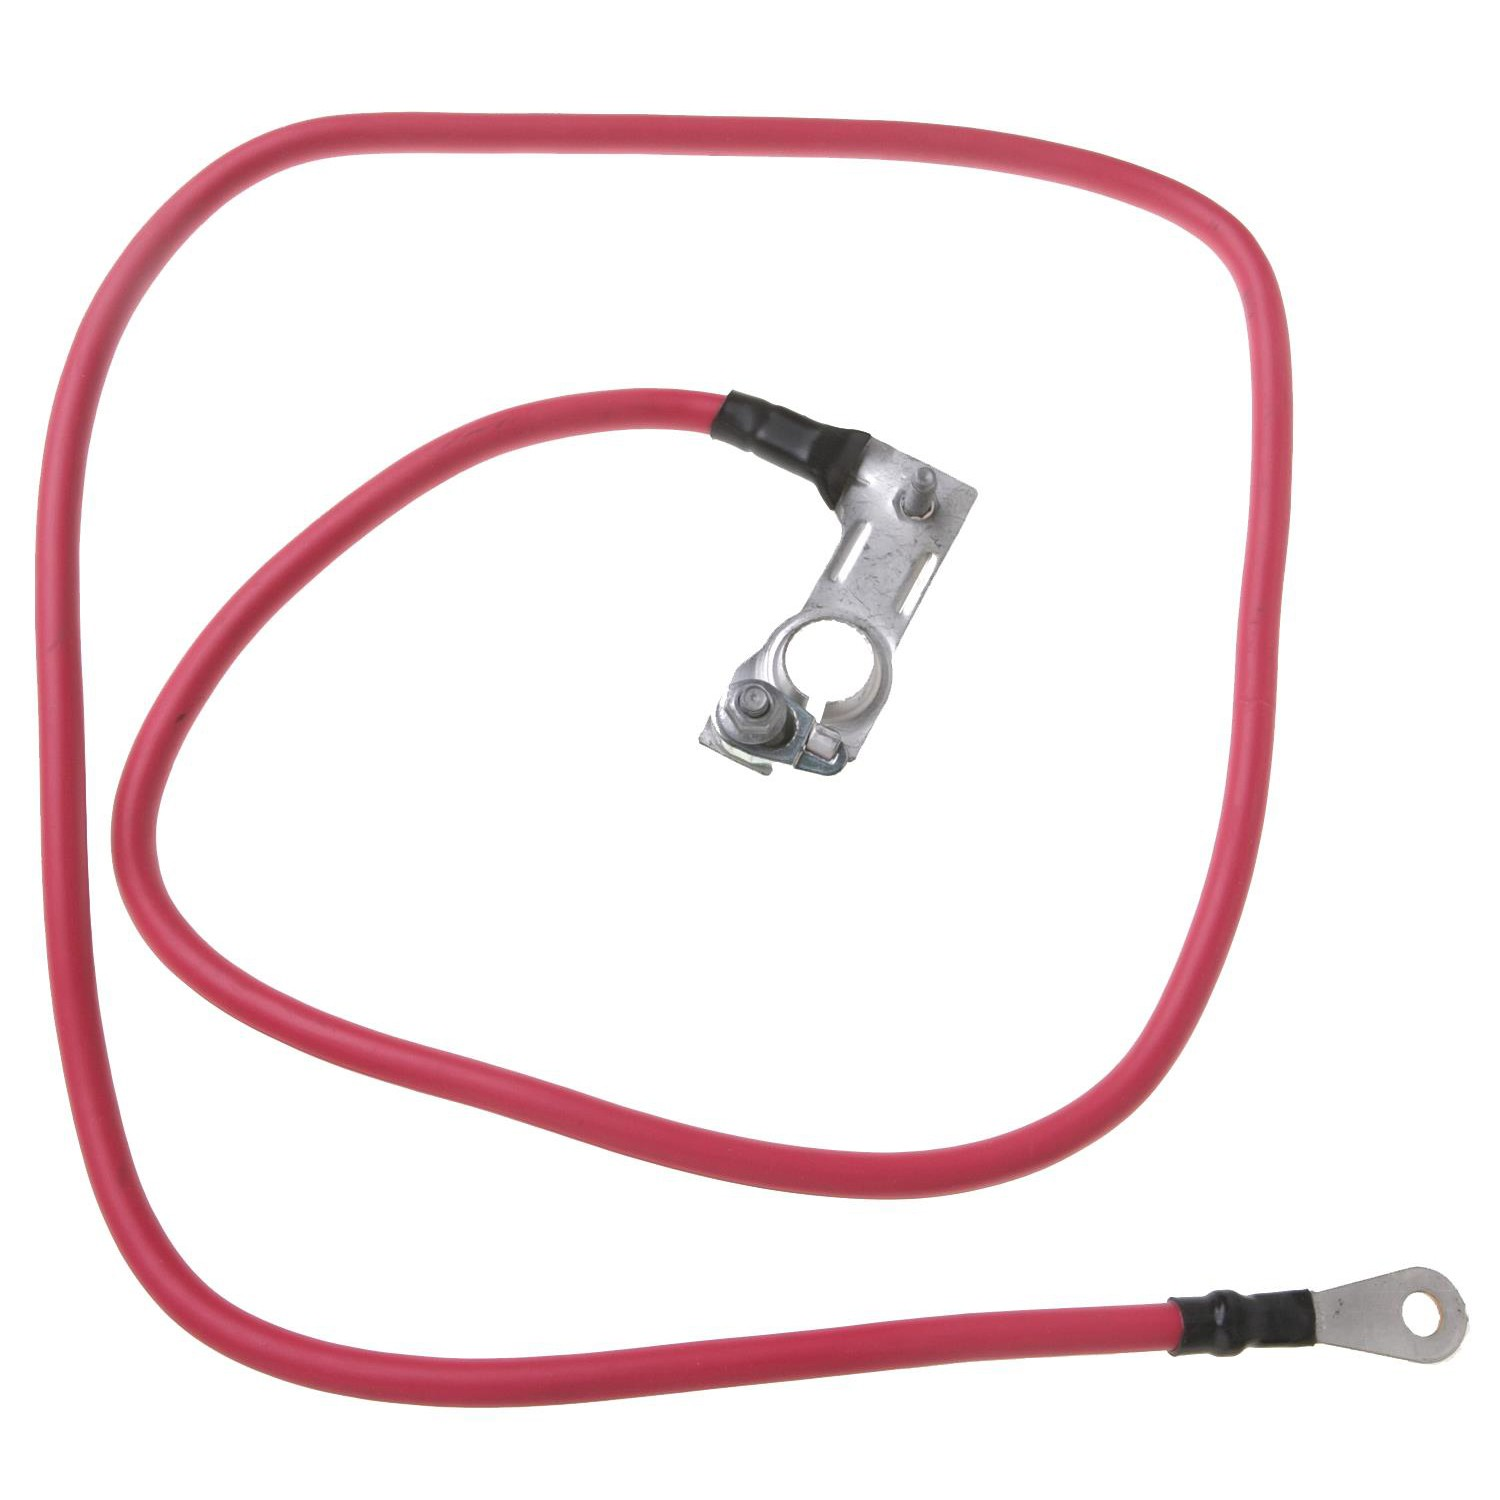 2004 Ford Expedition Battery Cable Sw A54 4